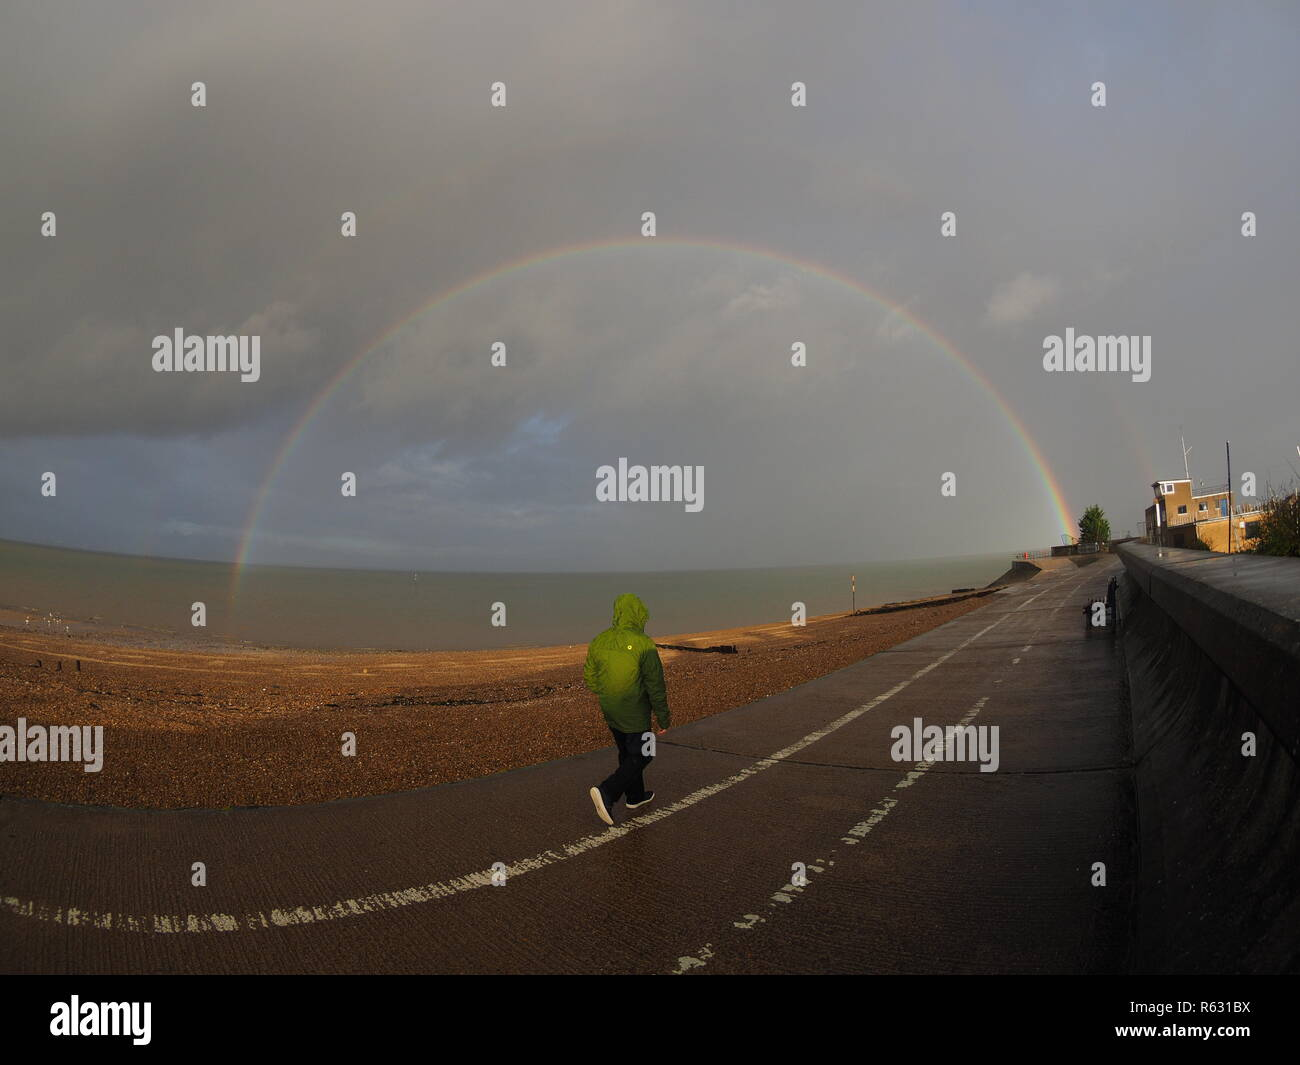 Sheerness, Kent, UK. 3rd Dec, 2018. UK Weather: a stunning rainbow appeared in Sheerness, Kent today during an afternoon shower. Credit: James Bell/Alamy Live News - Stock Image